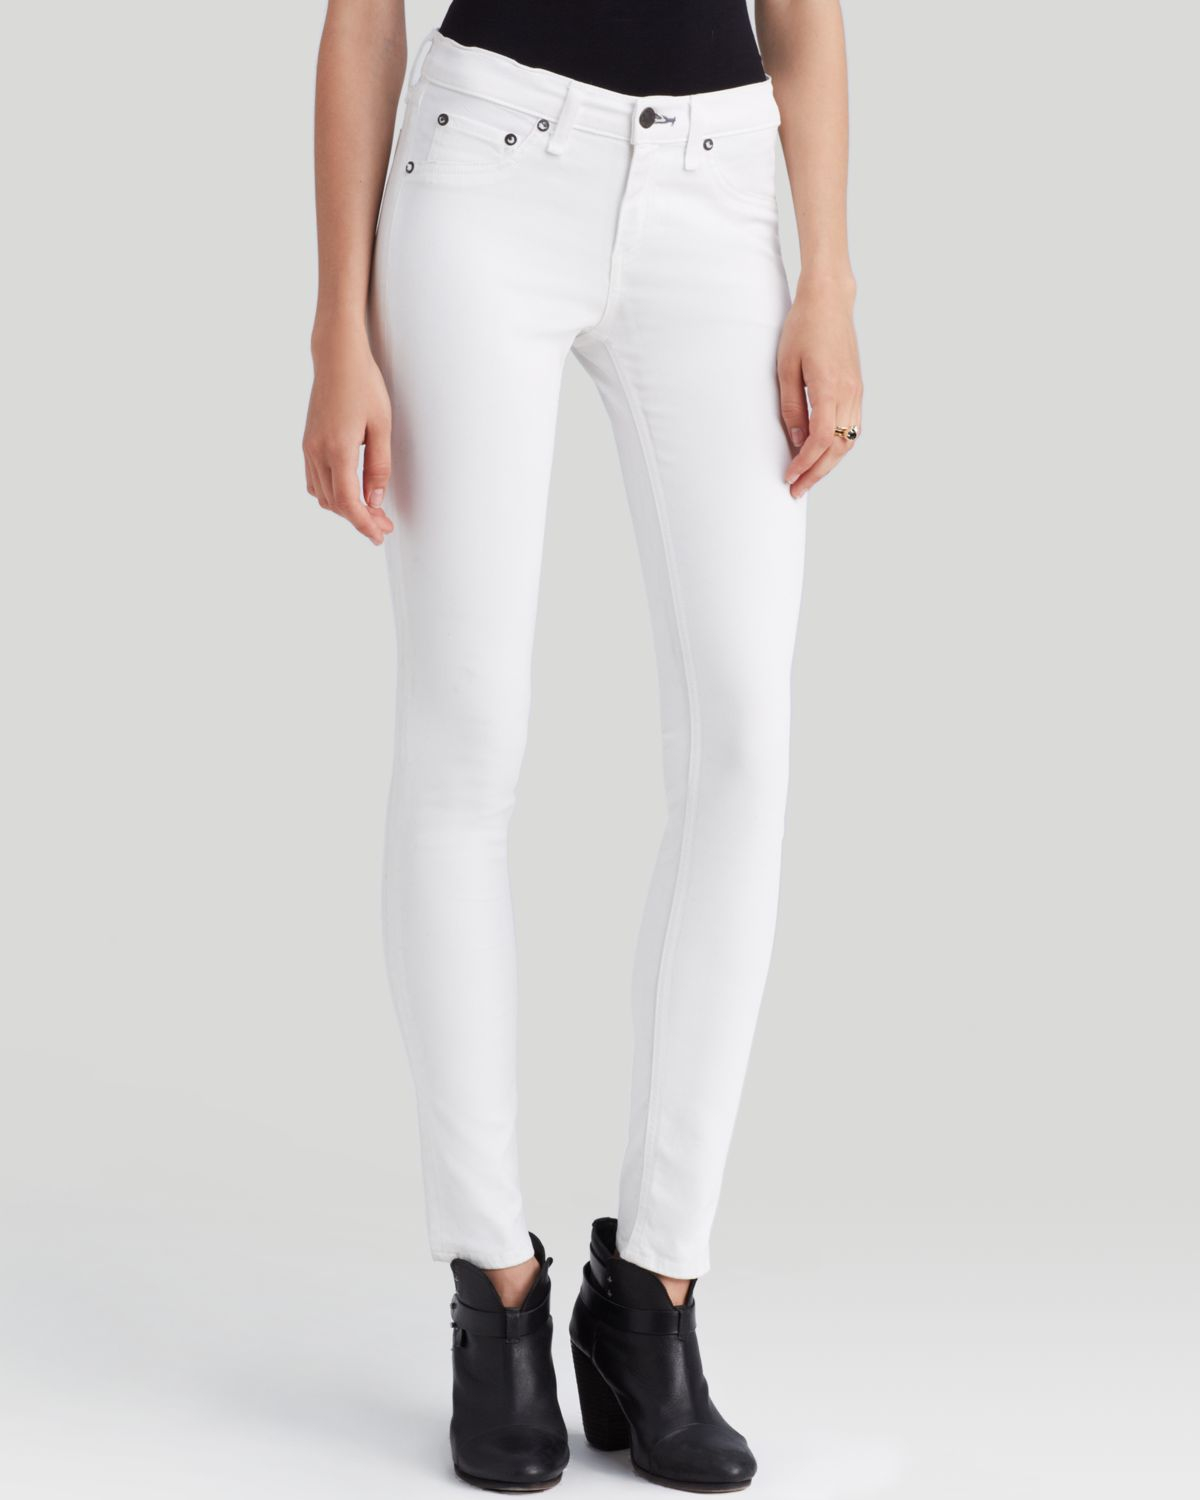 Rag & bone Jeans The Legging in Coated White in White | Lyst